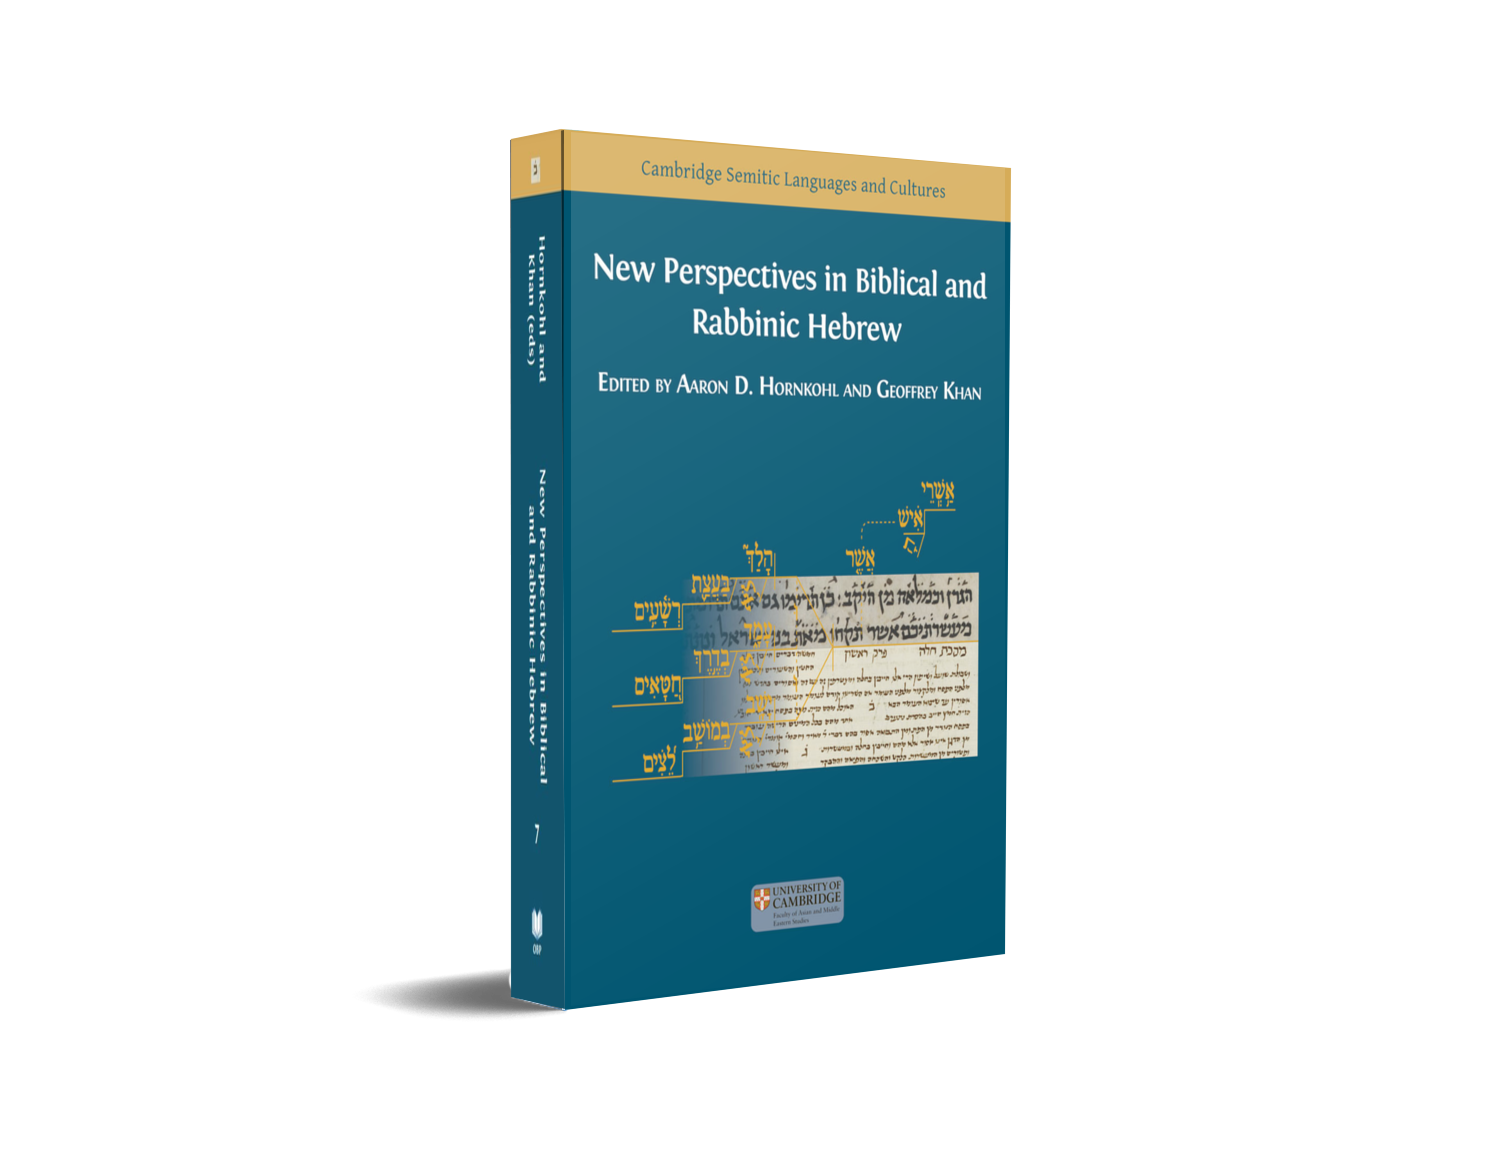 New Perspectives in Biblical and Rabbinic Hebrew